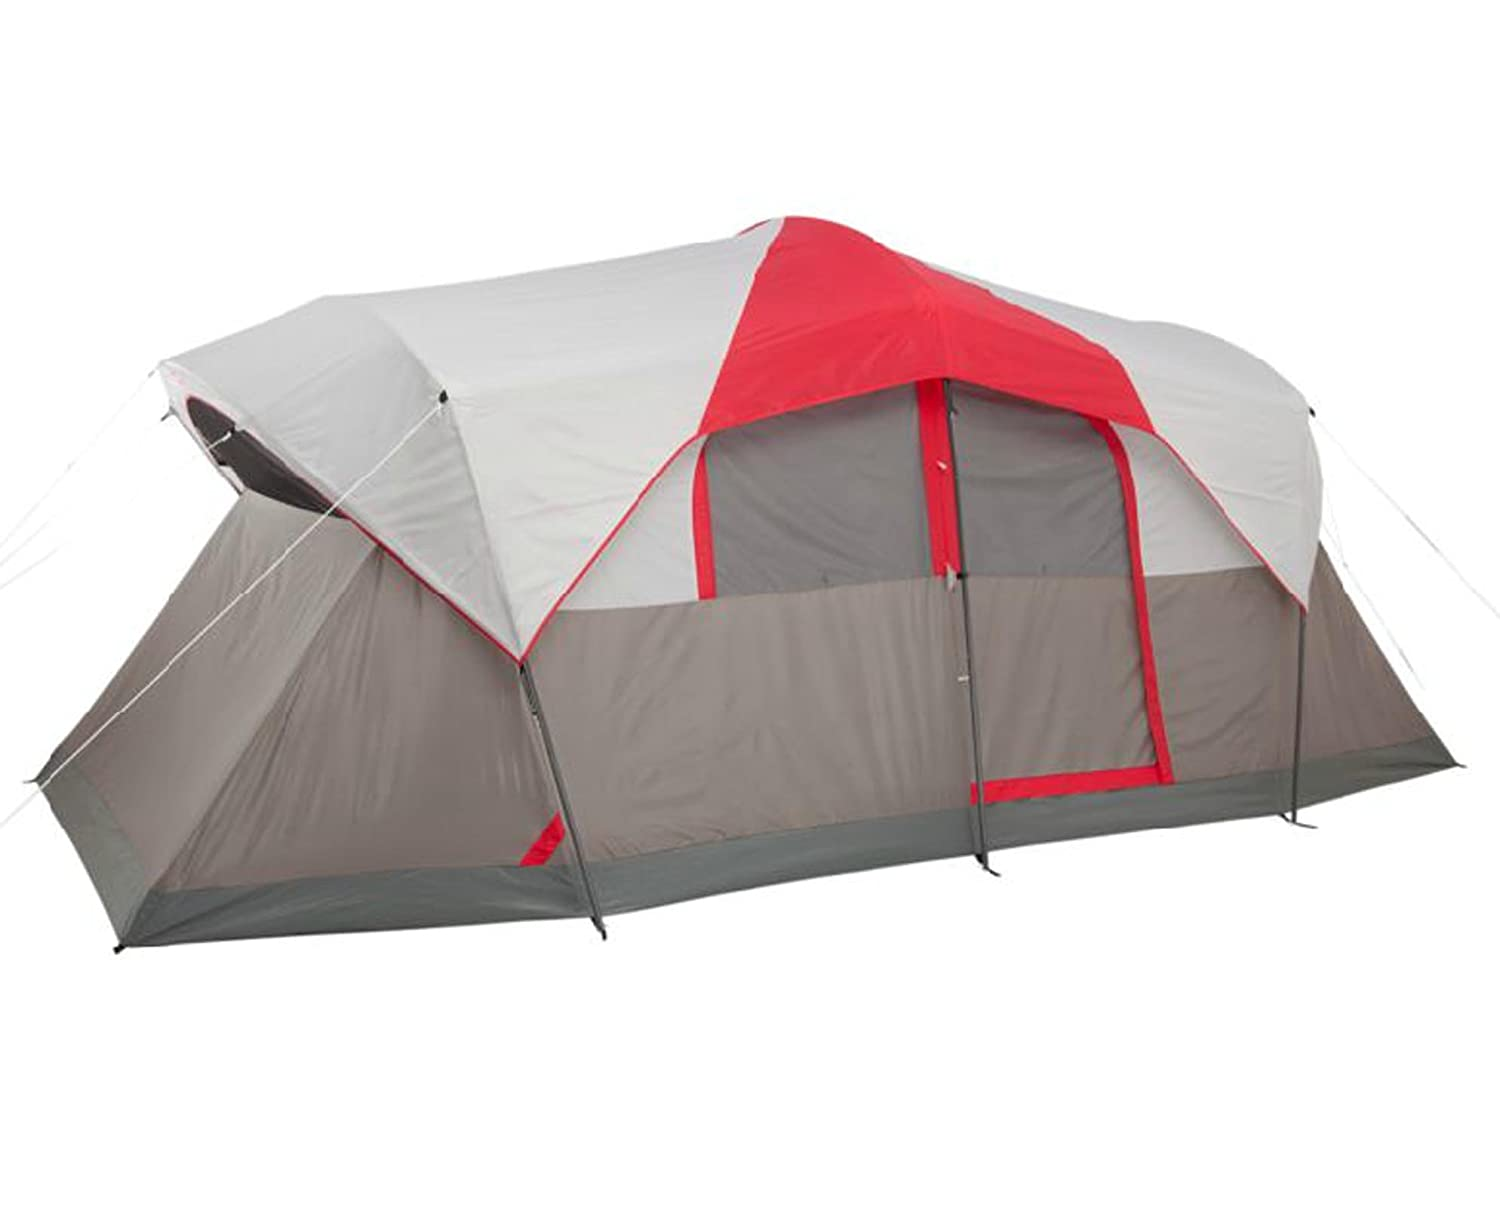 Amazon.com  Coleman WeatherMaster 10 Person 2 Room Family C&ing Tent w/ LED Light System  Sports u0026 Outdoors  sc 1 st  Amazon.com & Amazon.com : Coleman WeatherMaster 10 Person 2 Room Family Camping ...